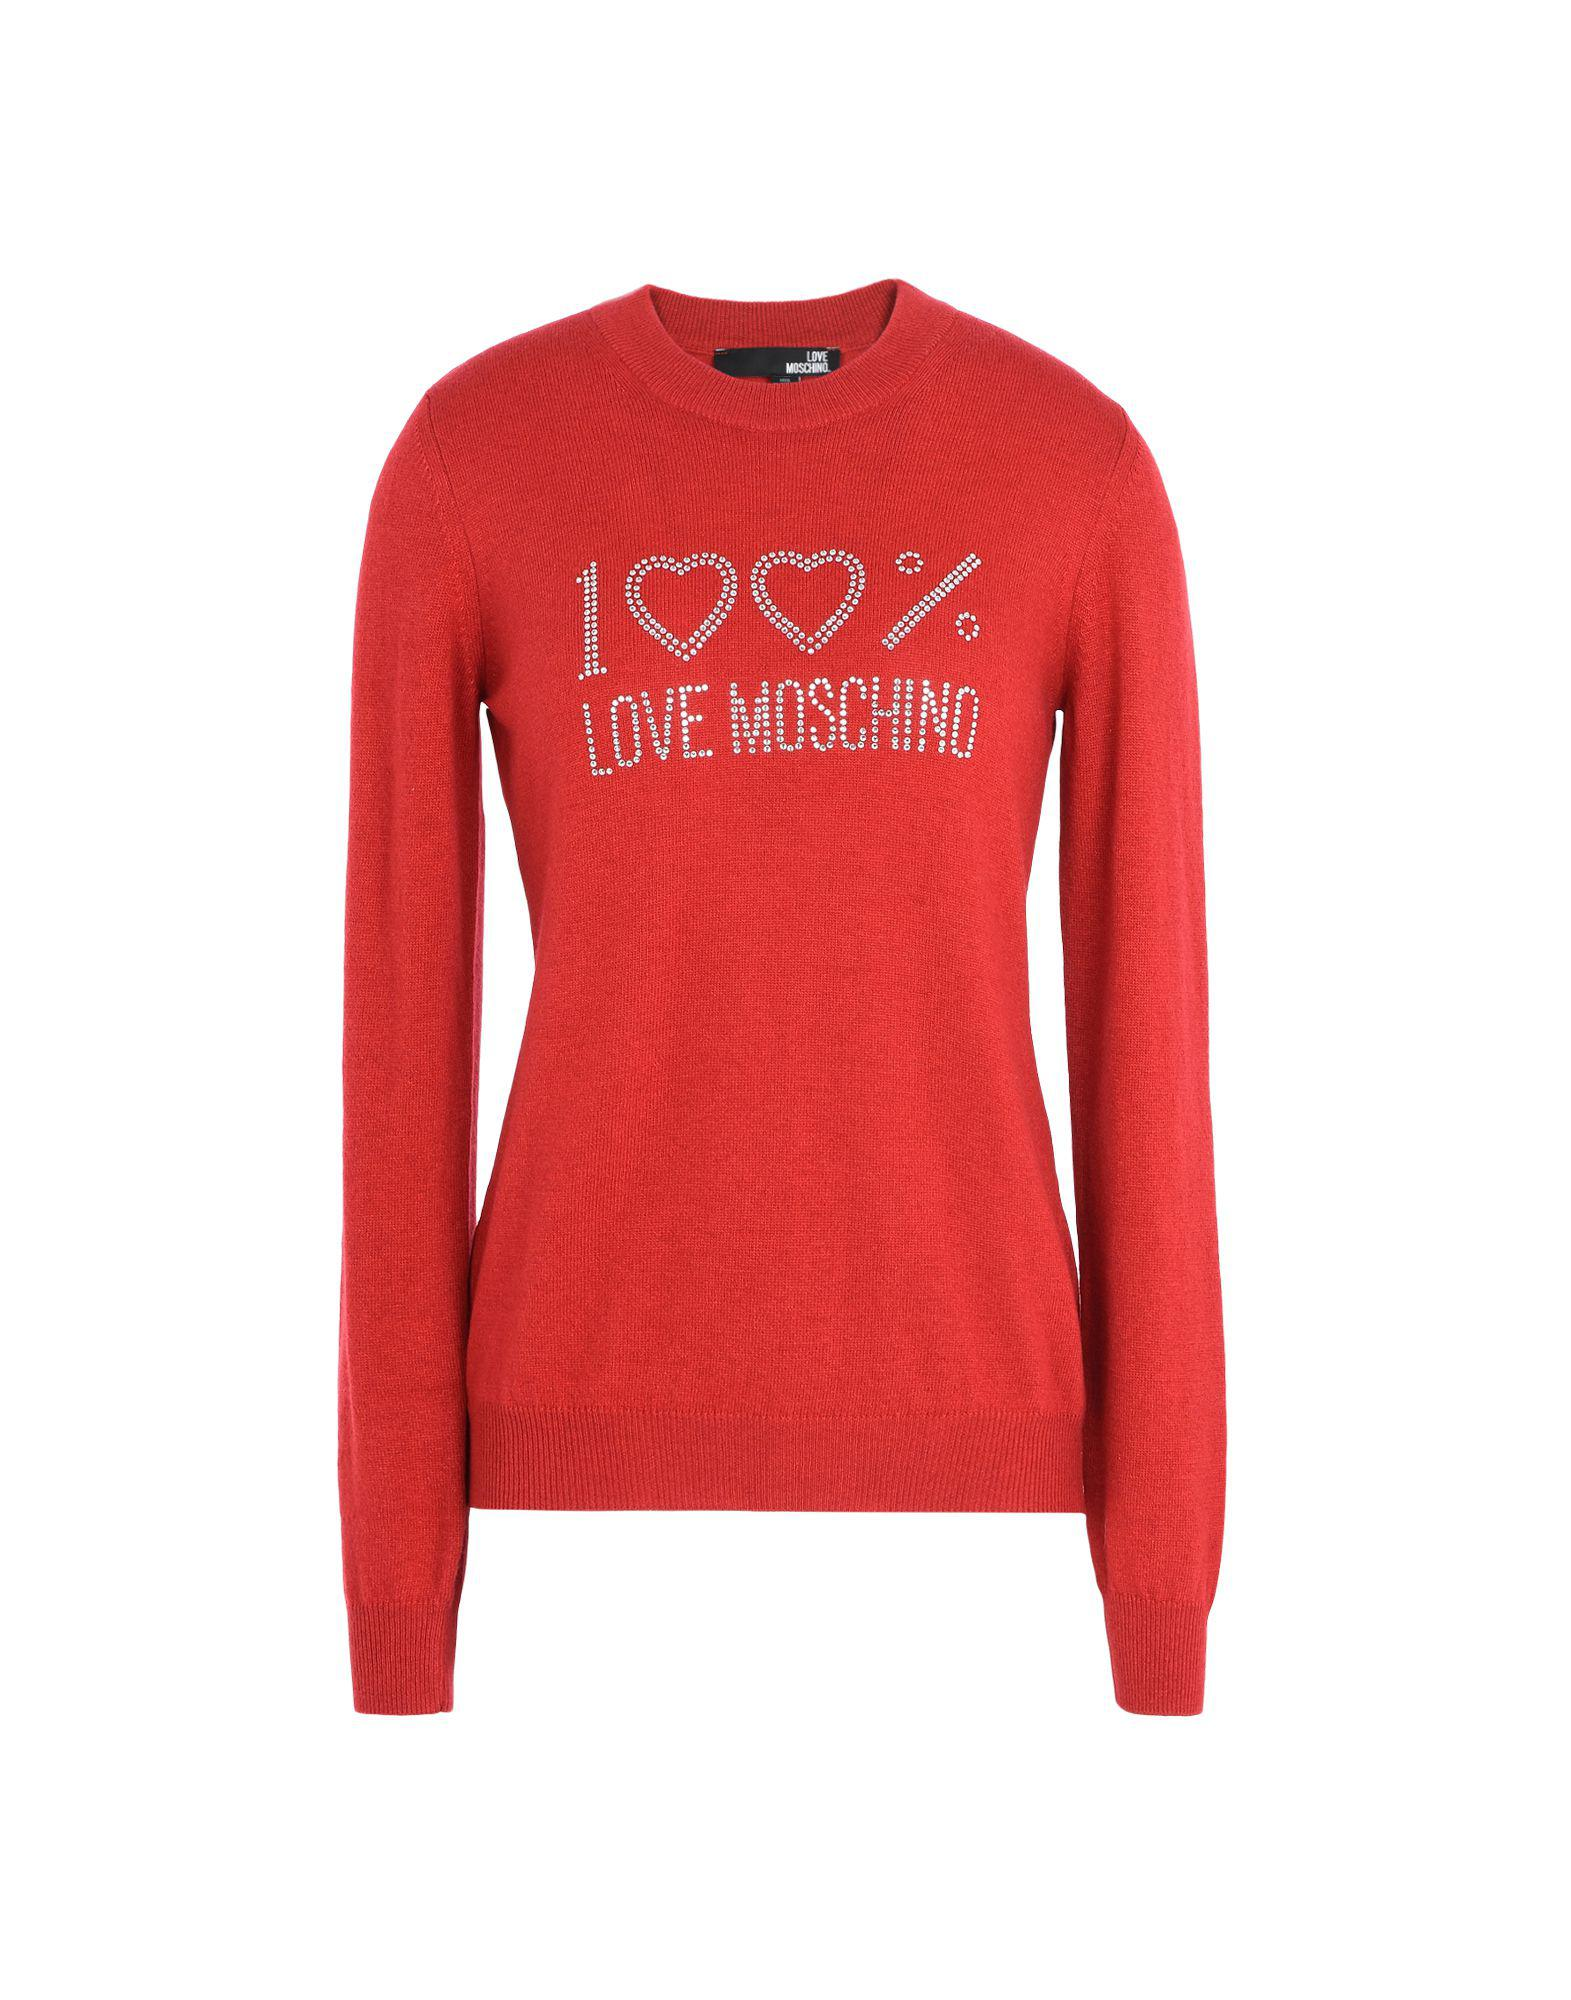 Lyst - Love moschino Long Sleeve Sweater in Red